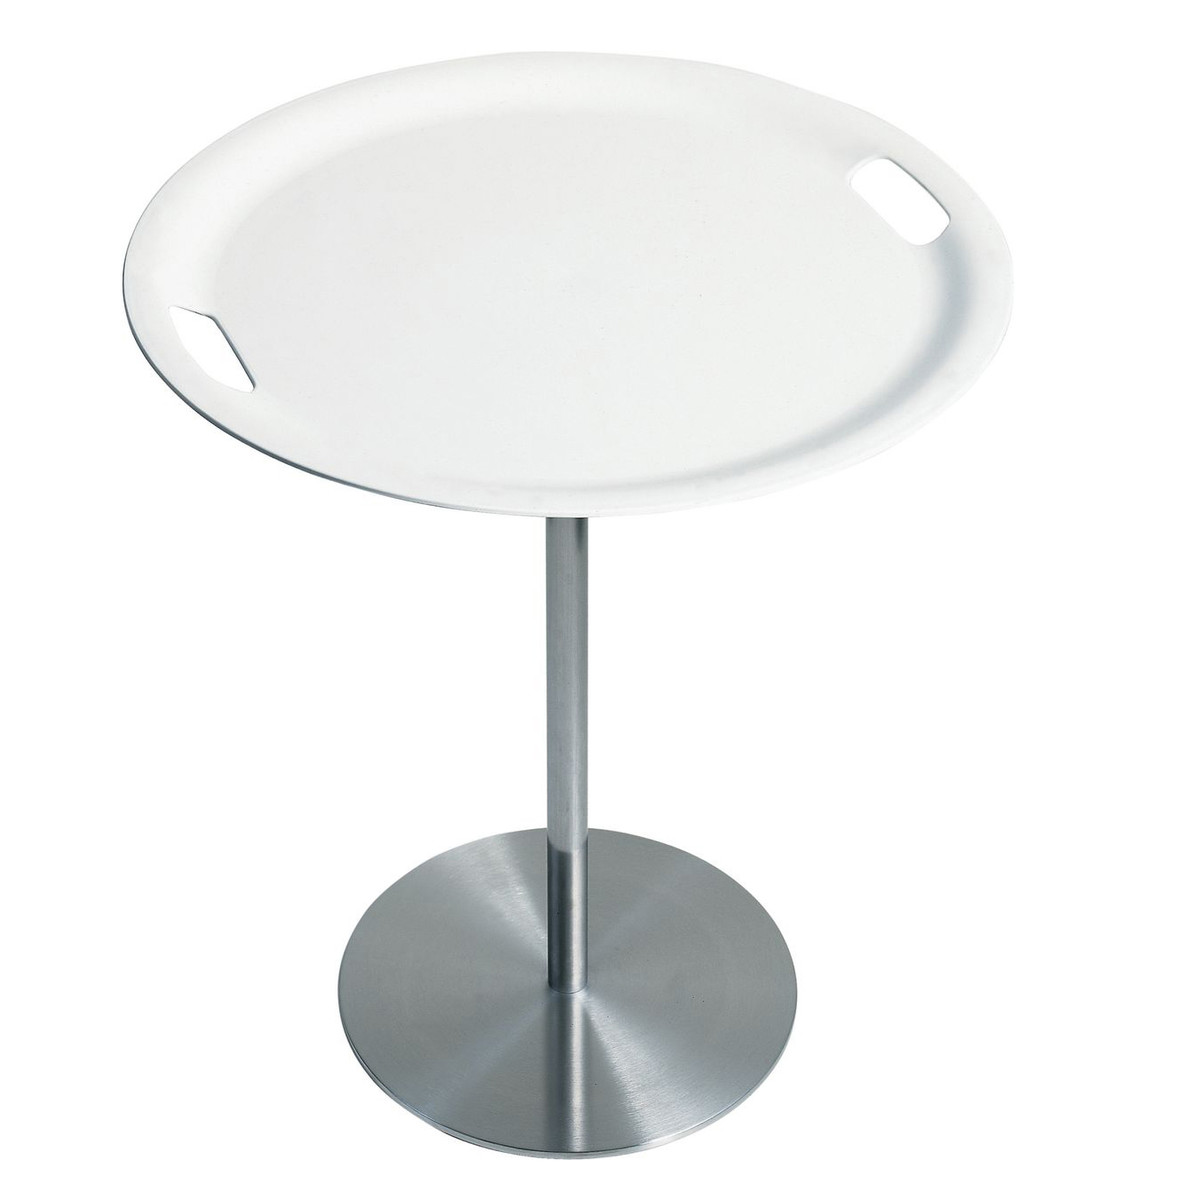 alessi jasper morrison op la table tray white panik design. Black Bedroom Furniture Sets. Home Design Ideas